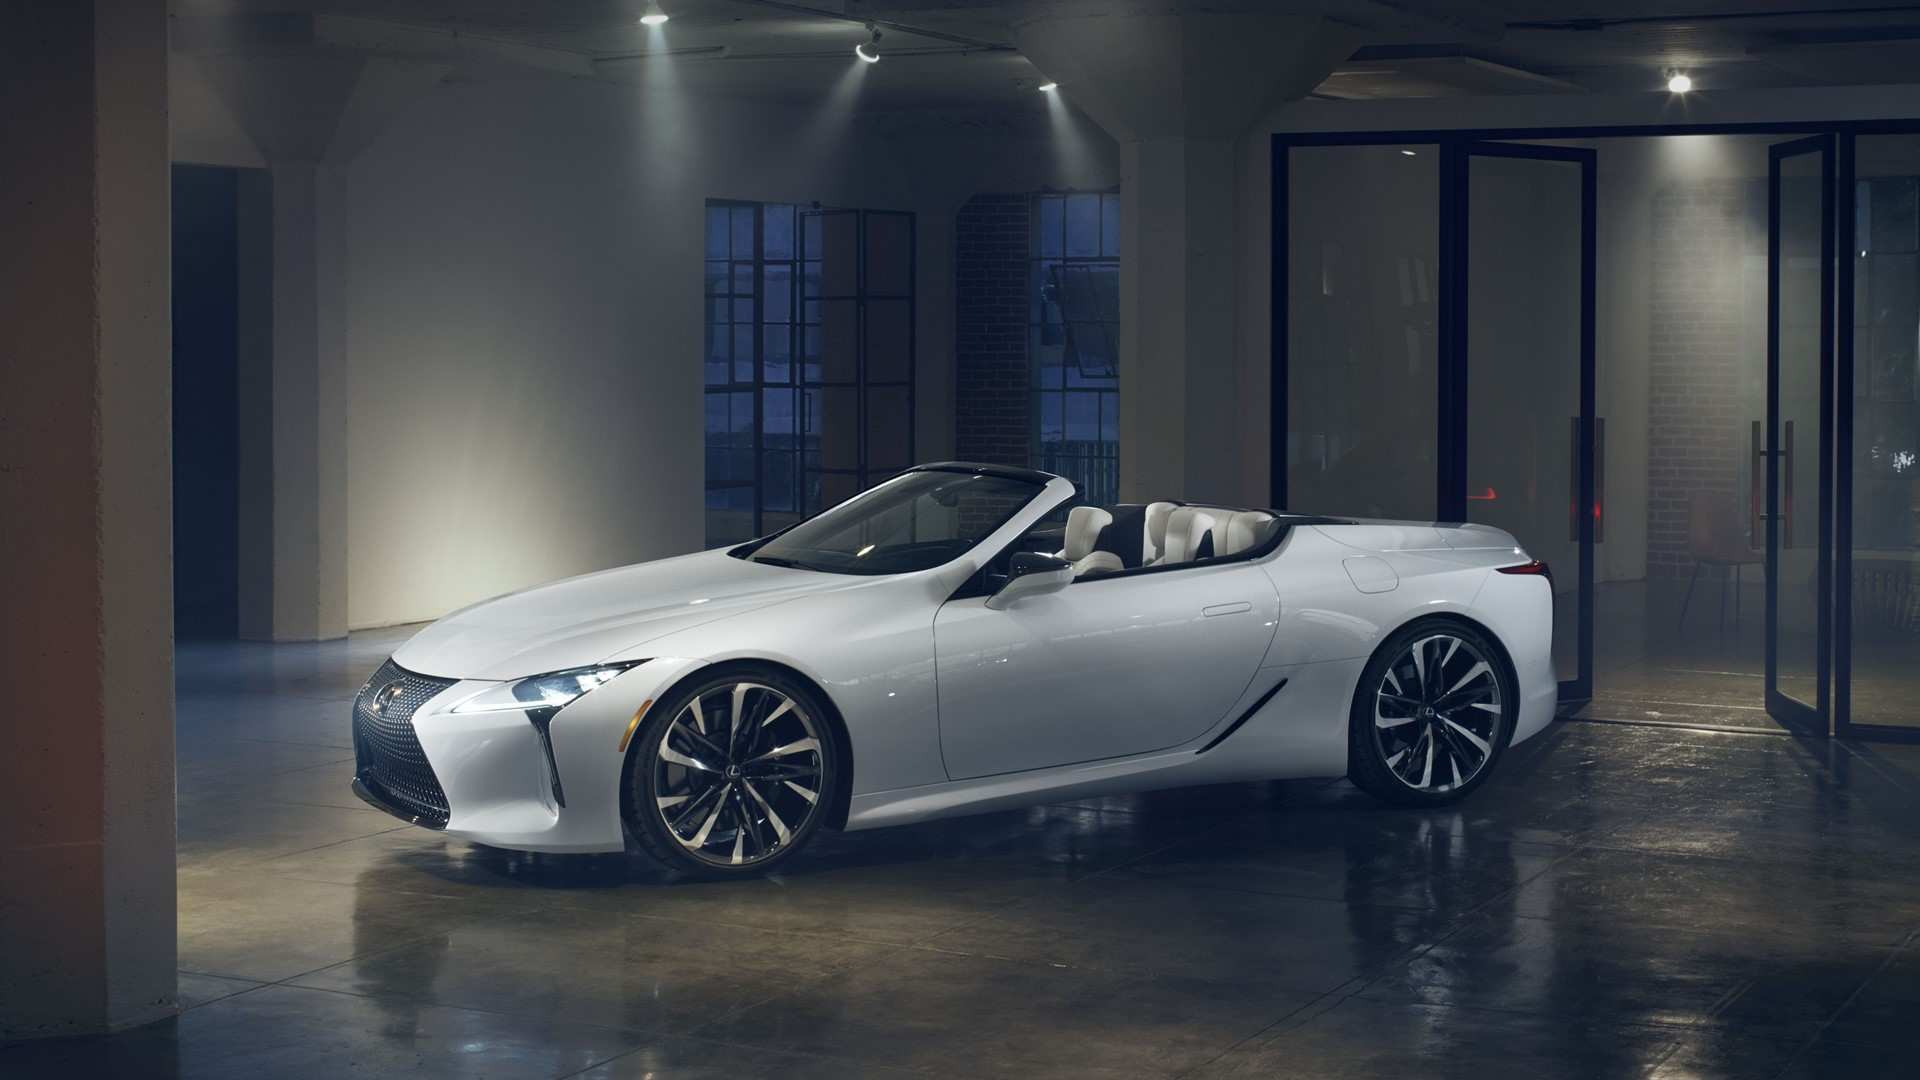 55 The Best 2020 Lexus Lc 500 Convertible Price Release Date And Concept